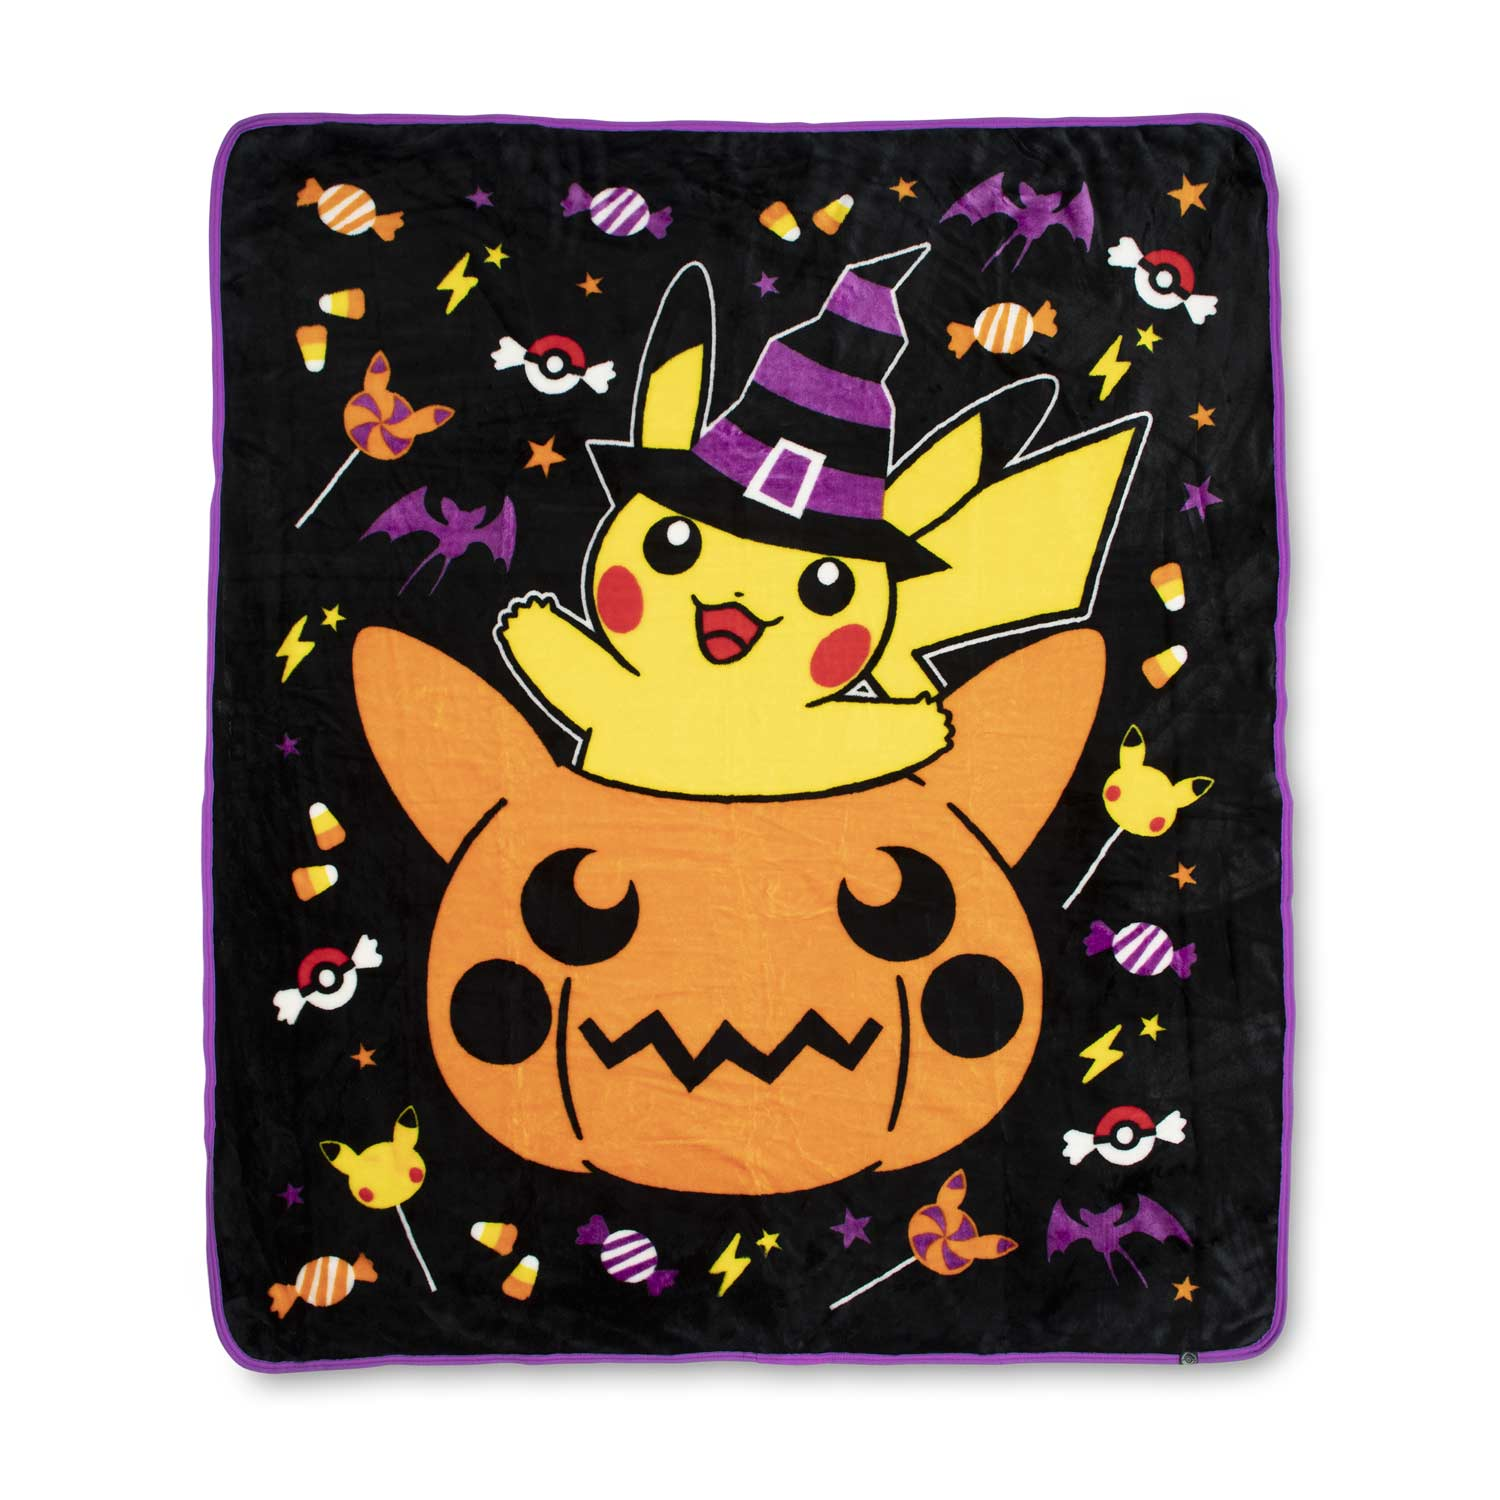 image for pumpkin pikachu halloween fleece throw 50 in by 60 in from